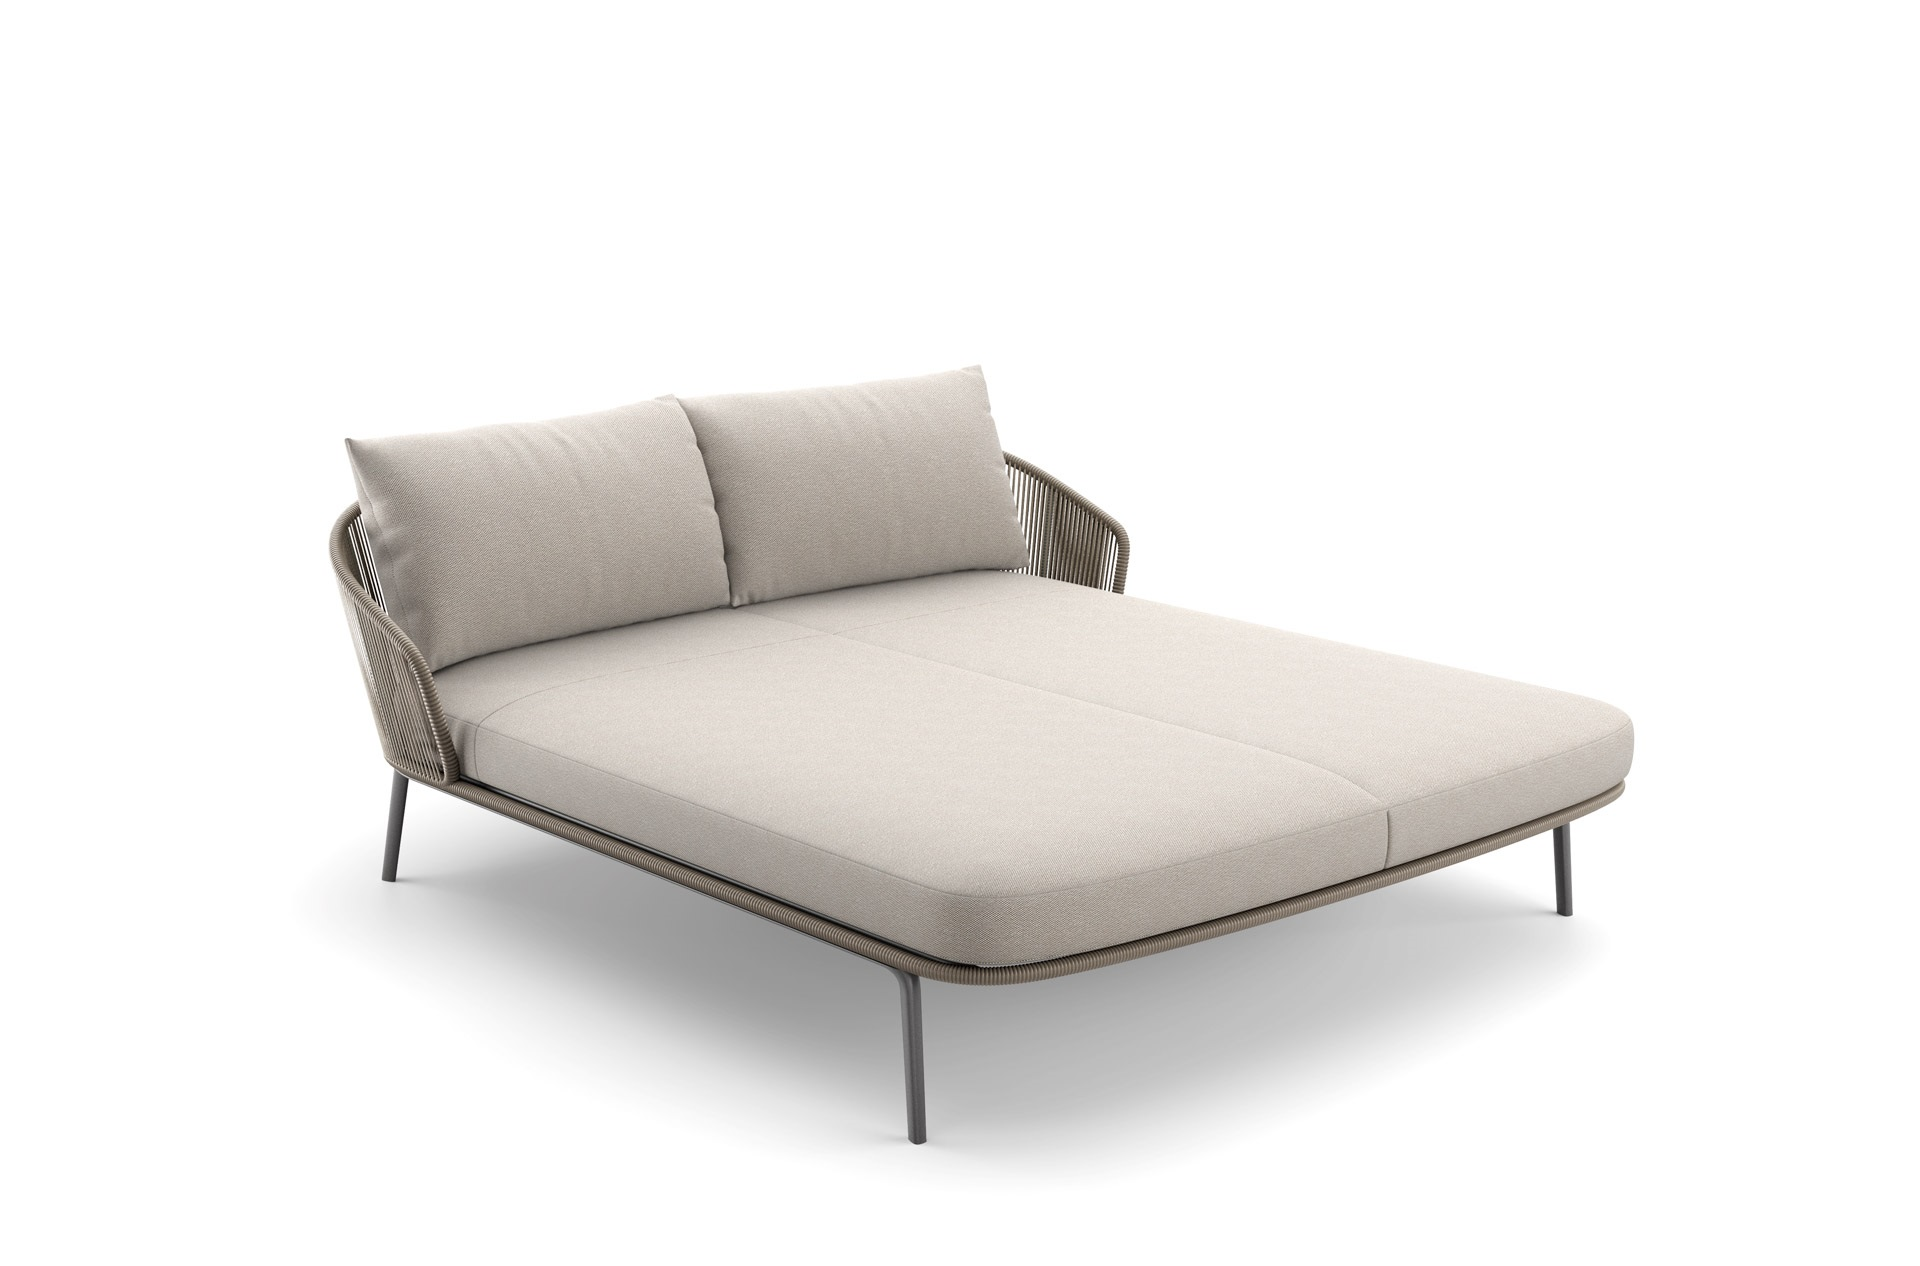 Dedon Rilly Double Daybed